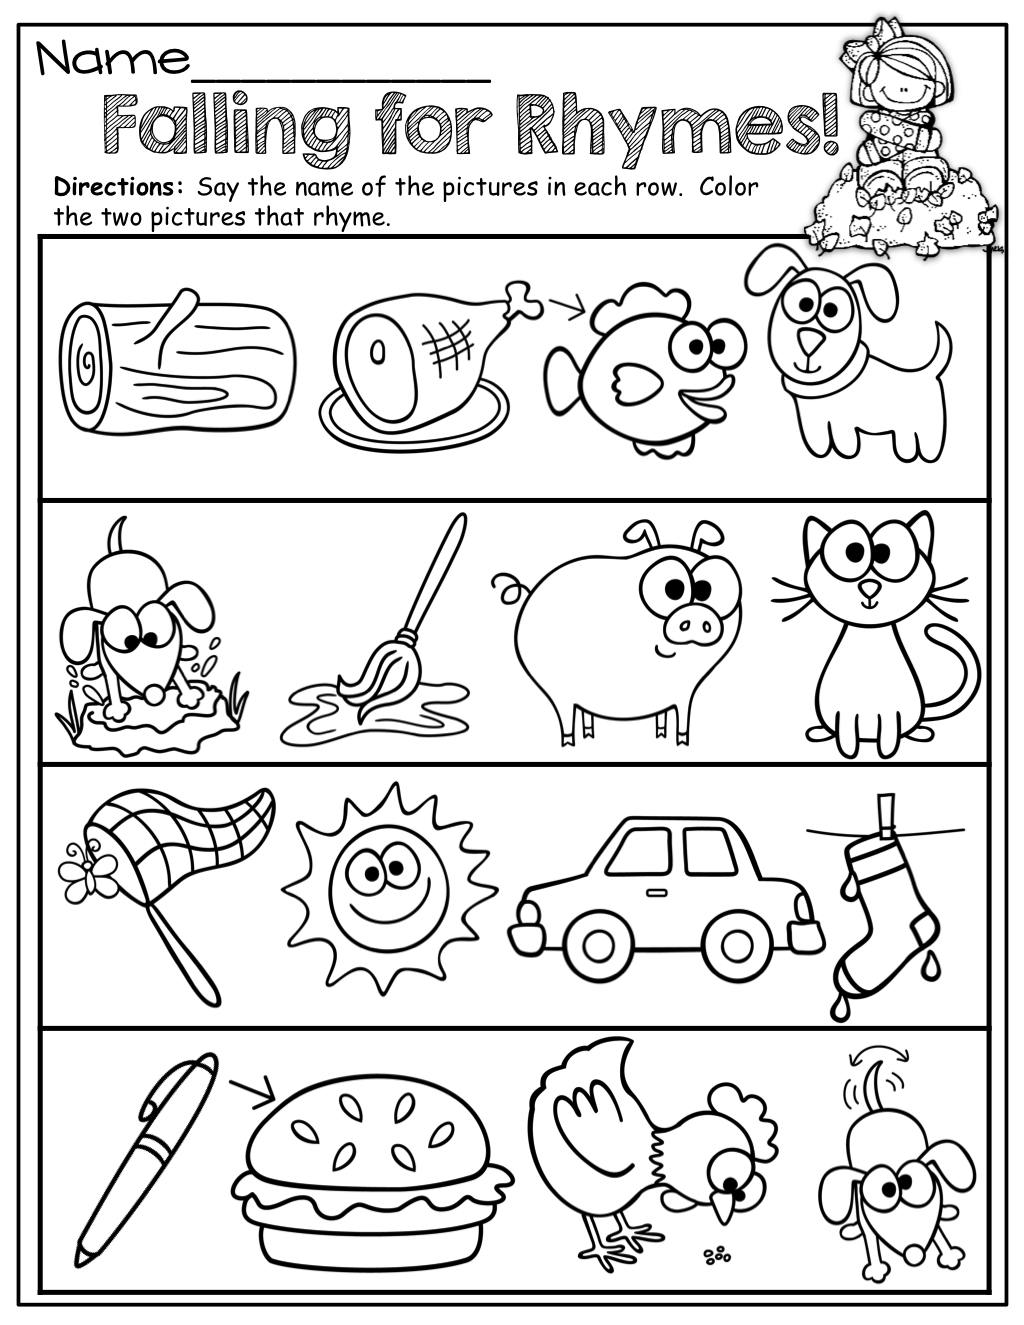 Worksheets Free Printable Rhyming Worksheets repinned by myslpmaterials com visit our page for free speech printable materials rhyming words